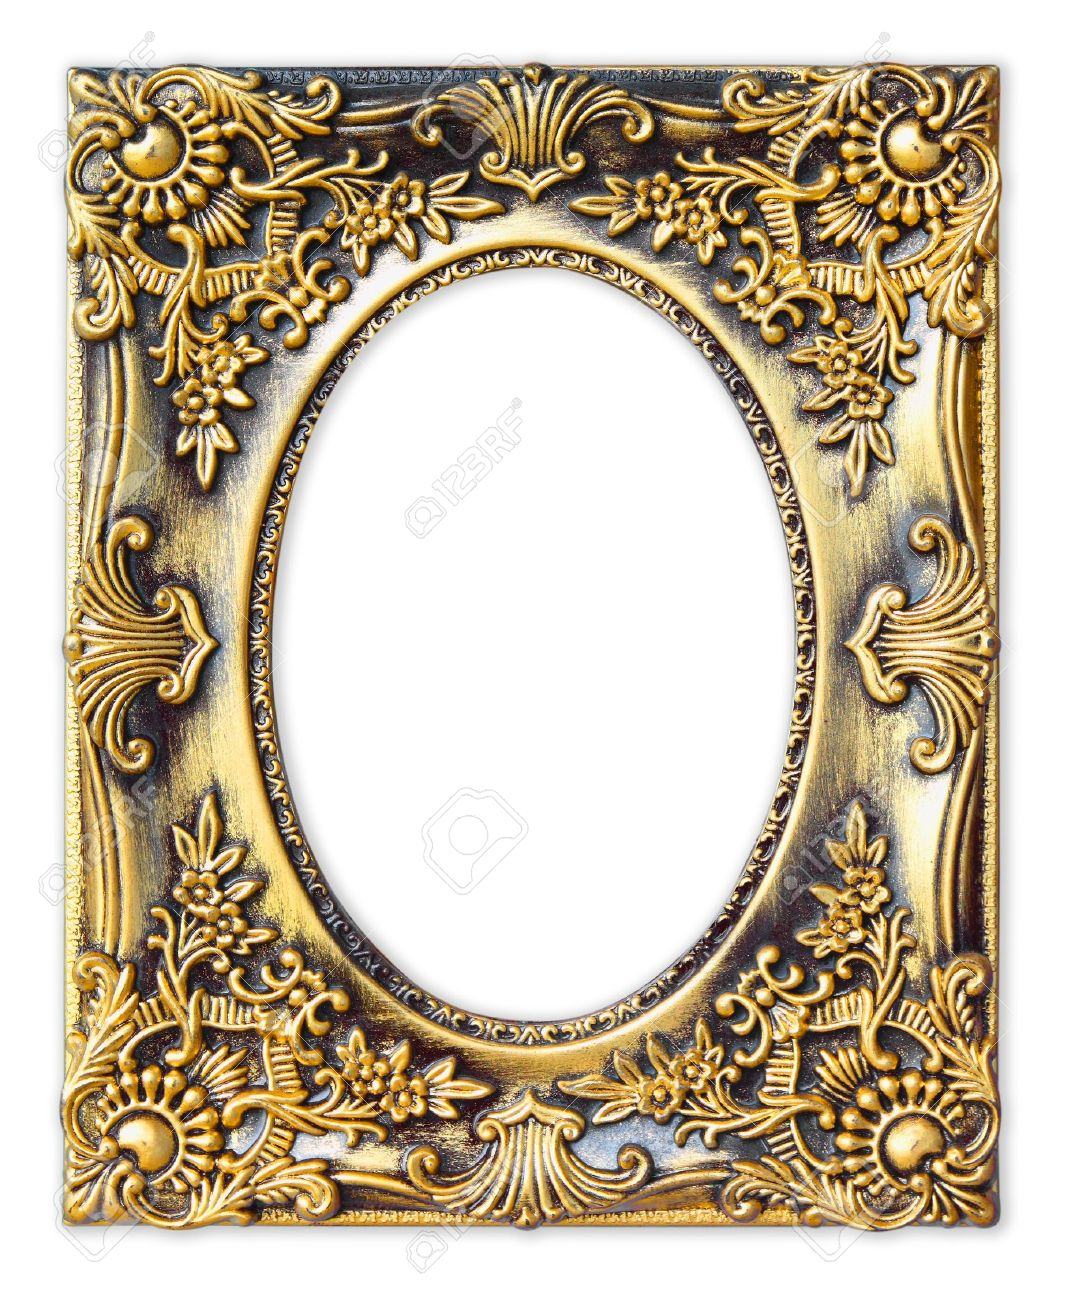 Antique frame Gold Stock Photo The Old Antique Gold Frame On The White Background Perry Hopf Antique Framing The Old Antique Gold Frame On The White Background Stock Photo